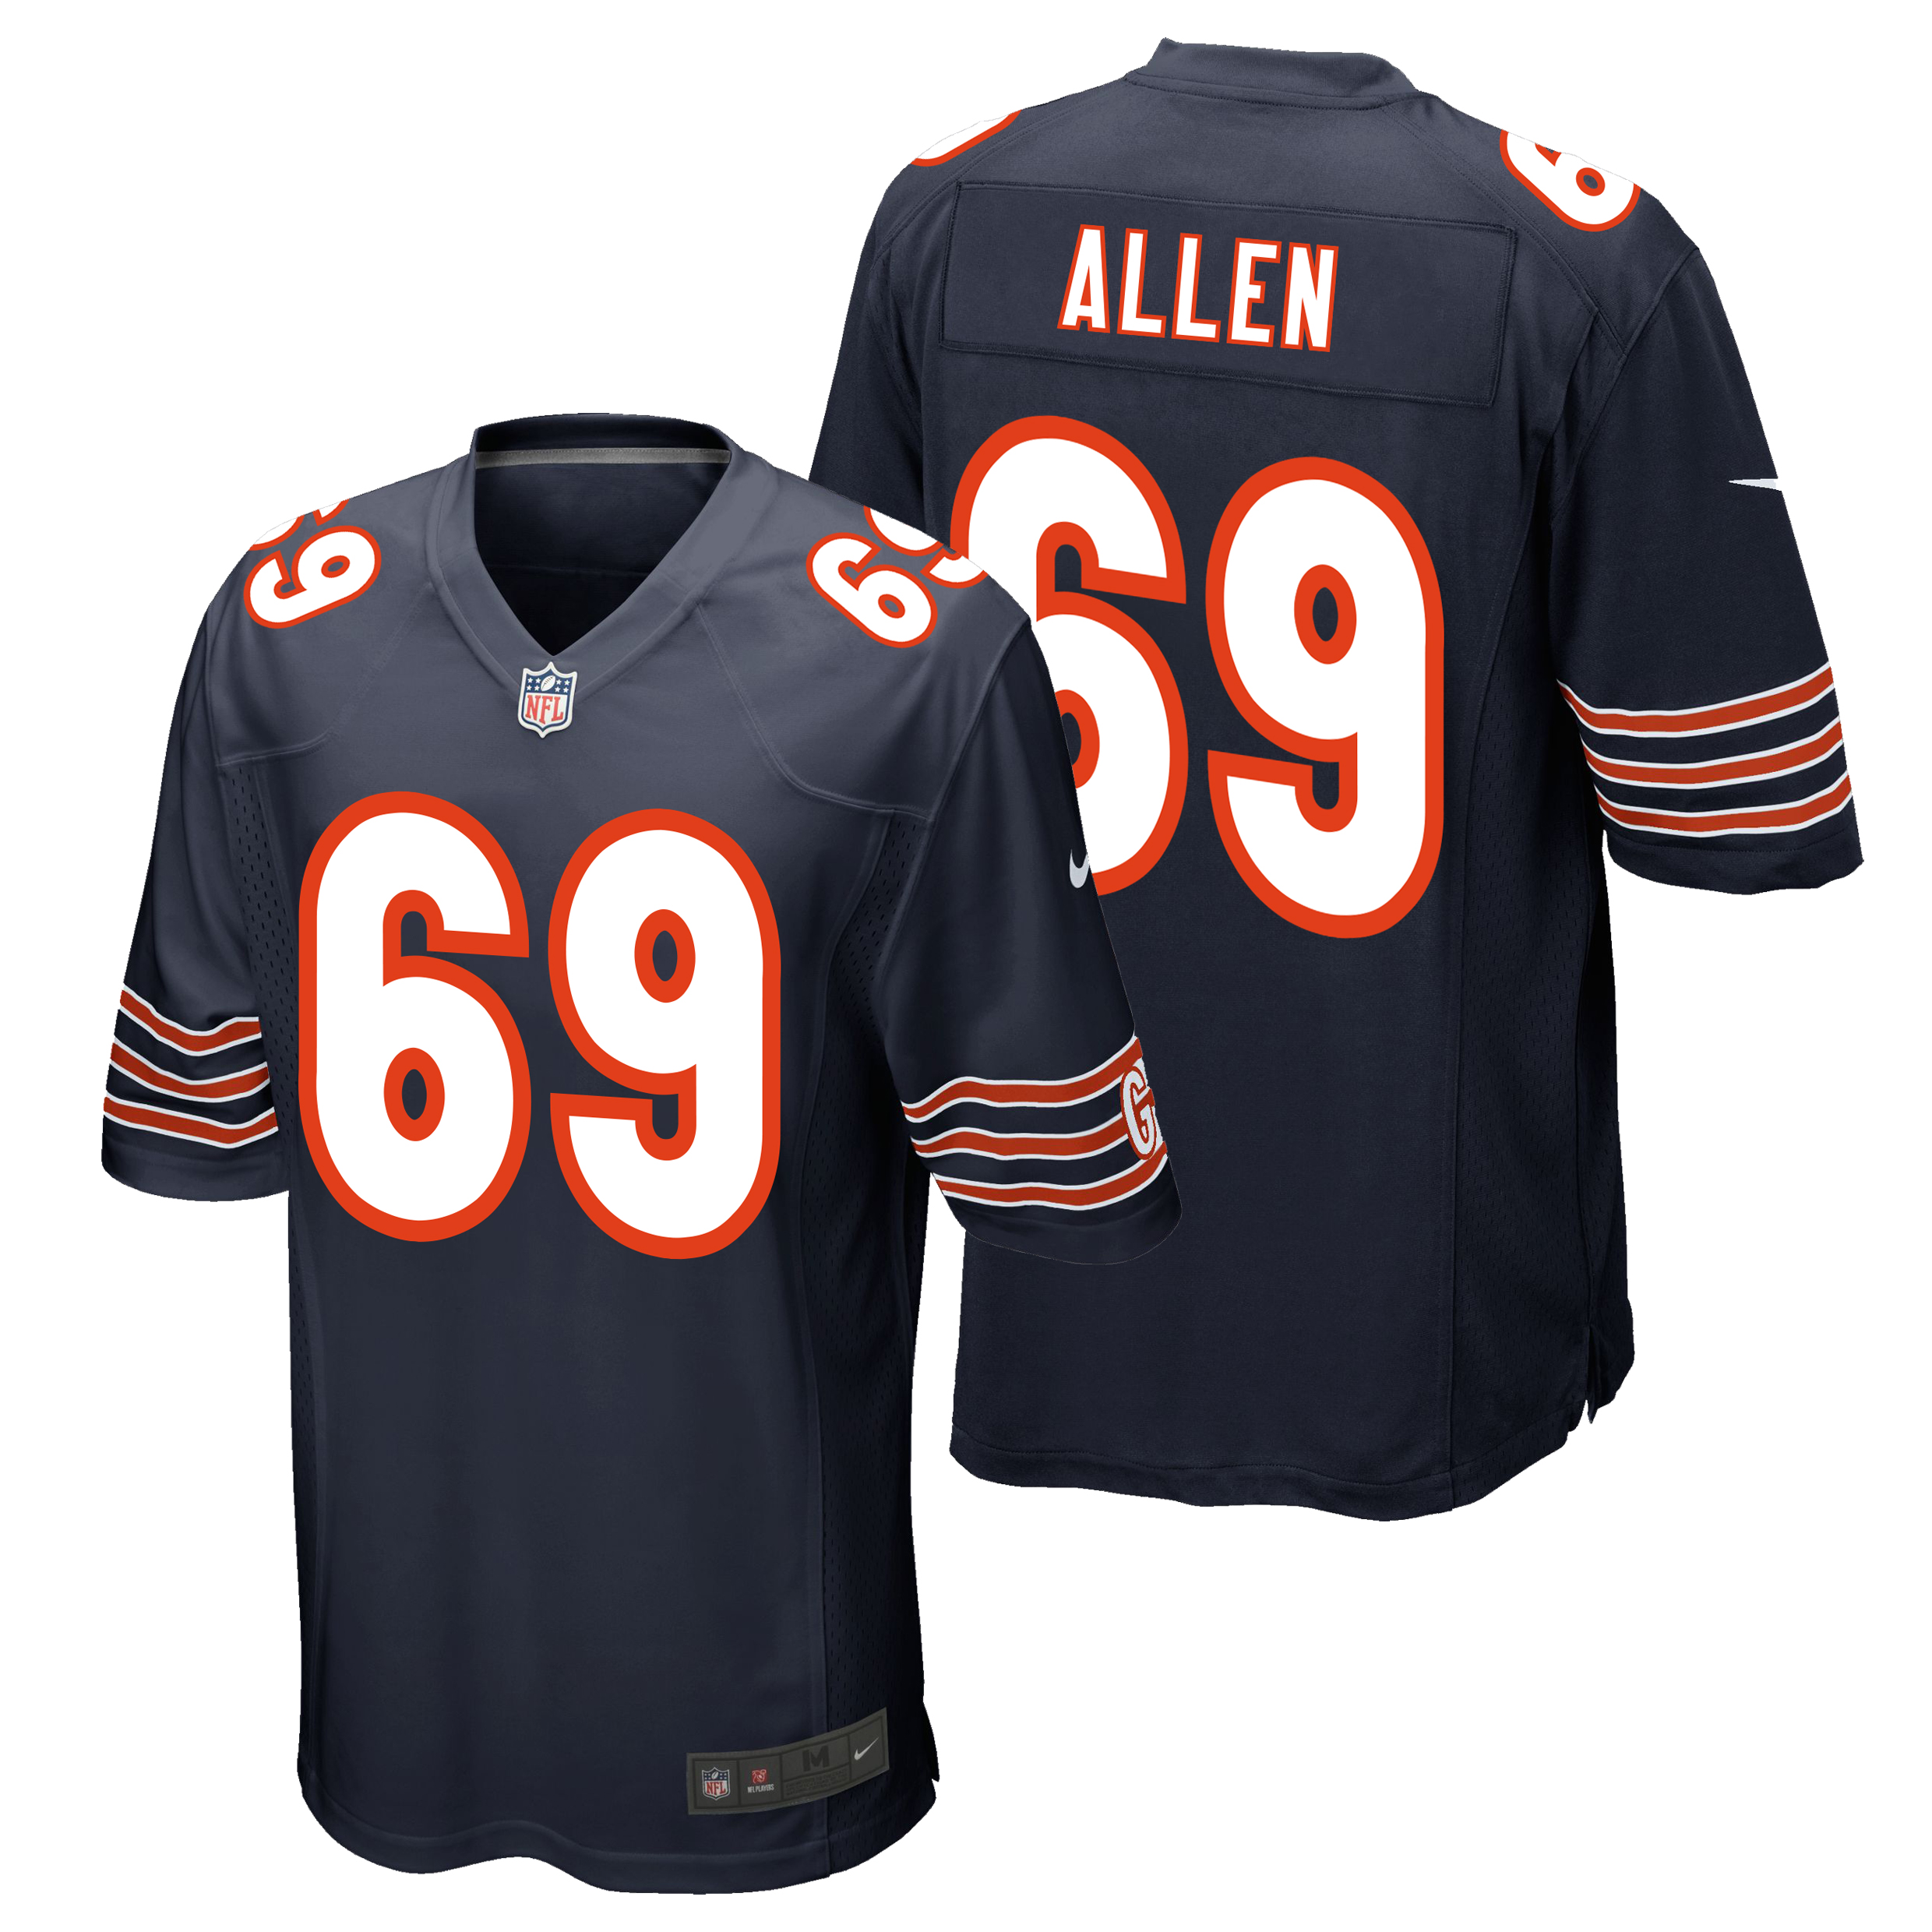 Chicago Bears Home Game Jersey - Jared Allen